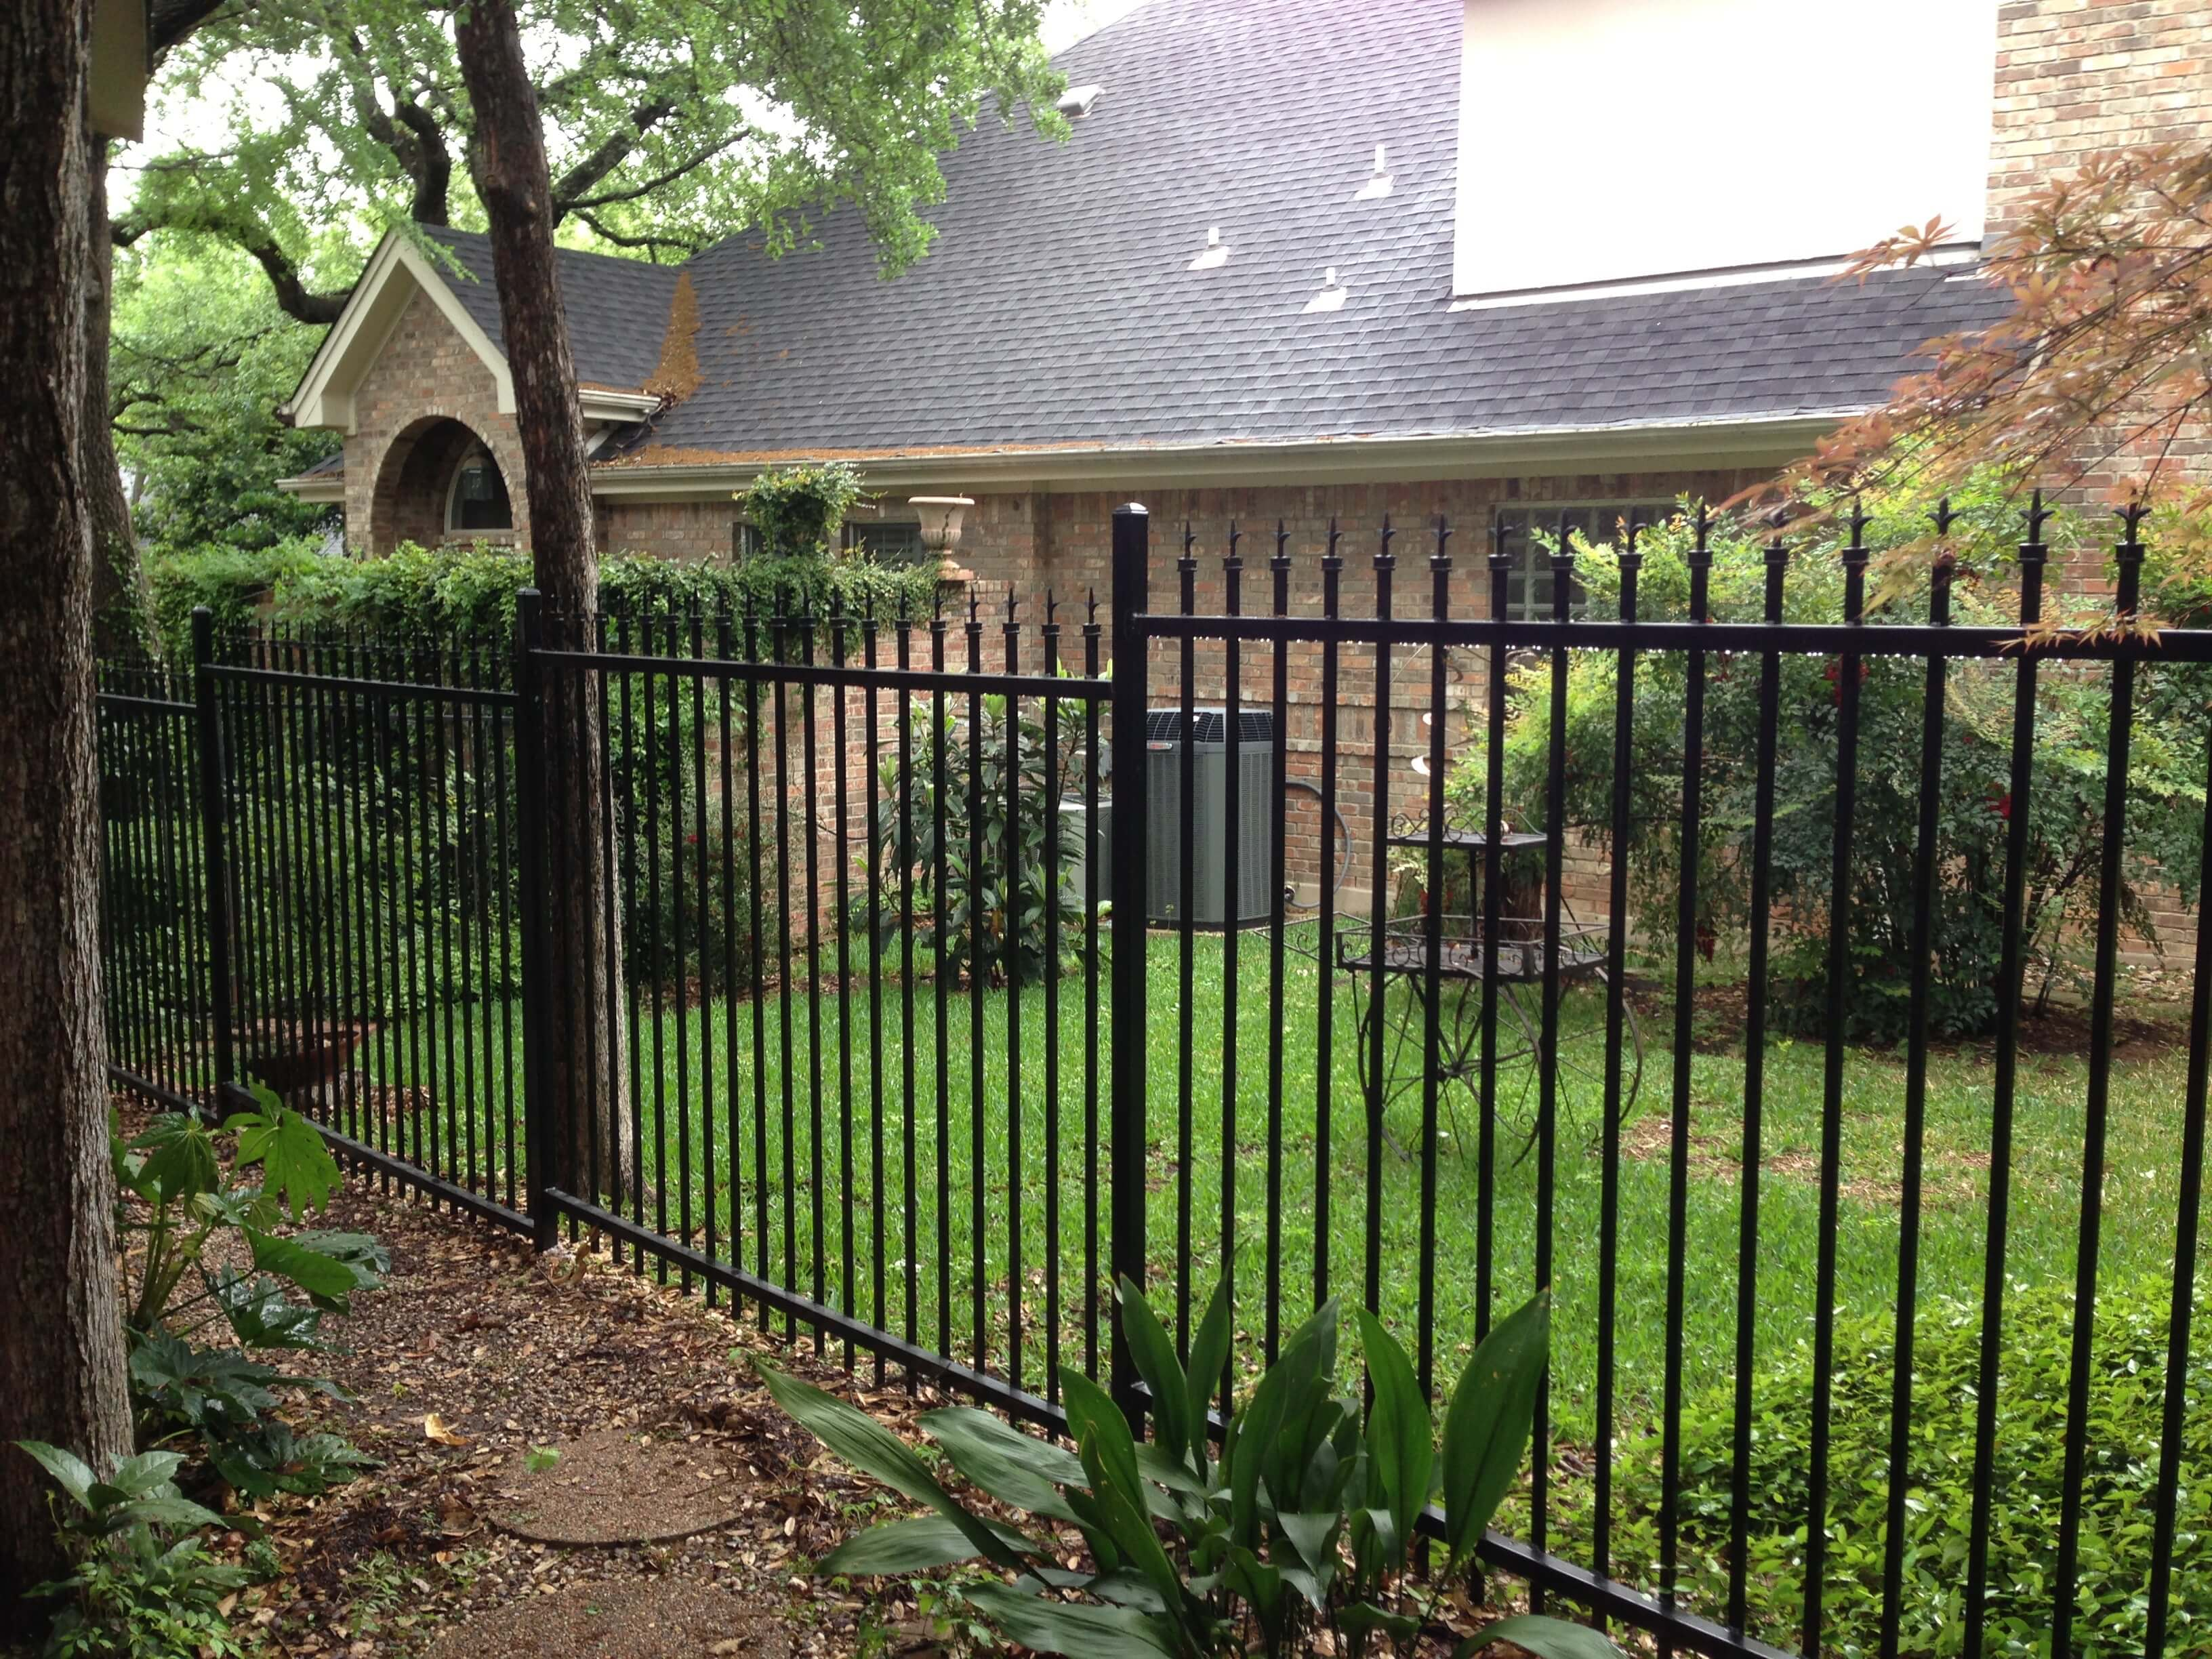 Pressed Spear Wrought Iron Fences - Apple Fence Austin, TX